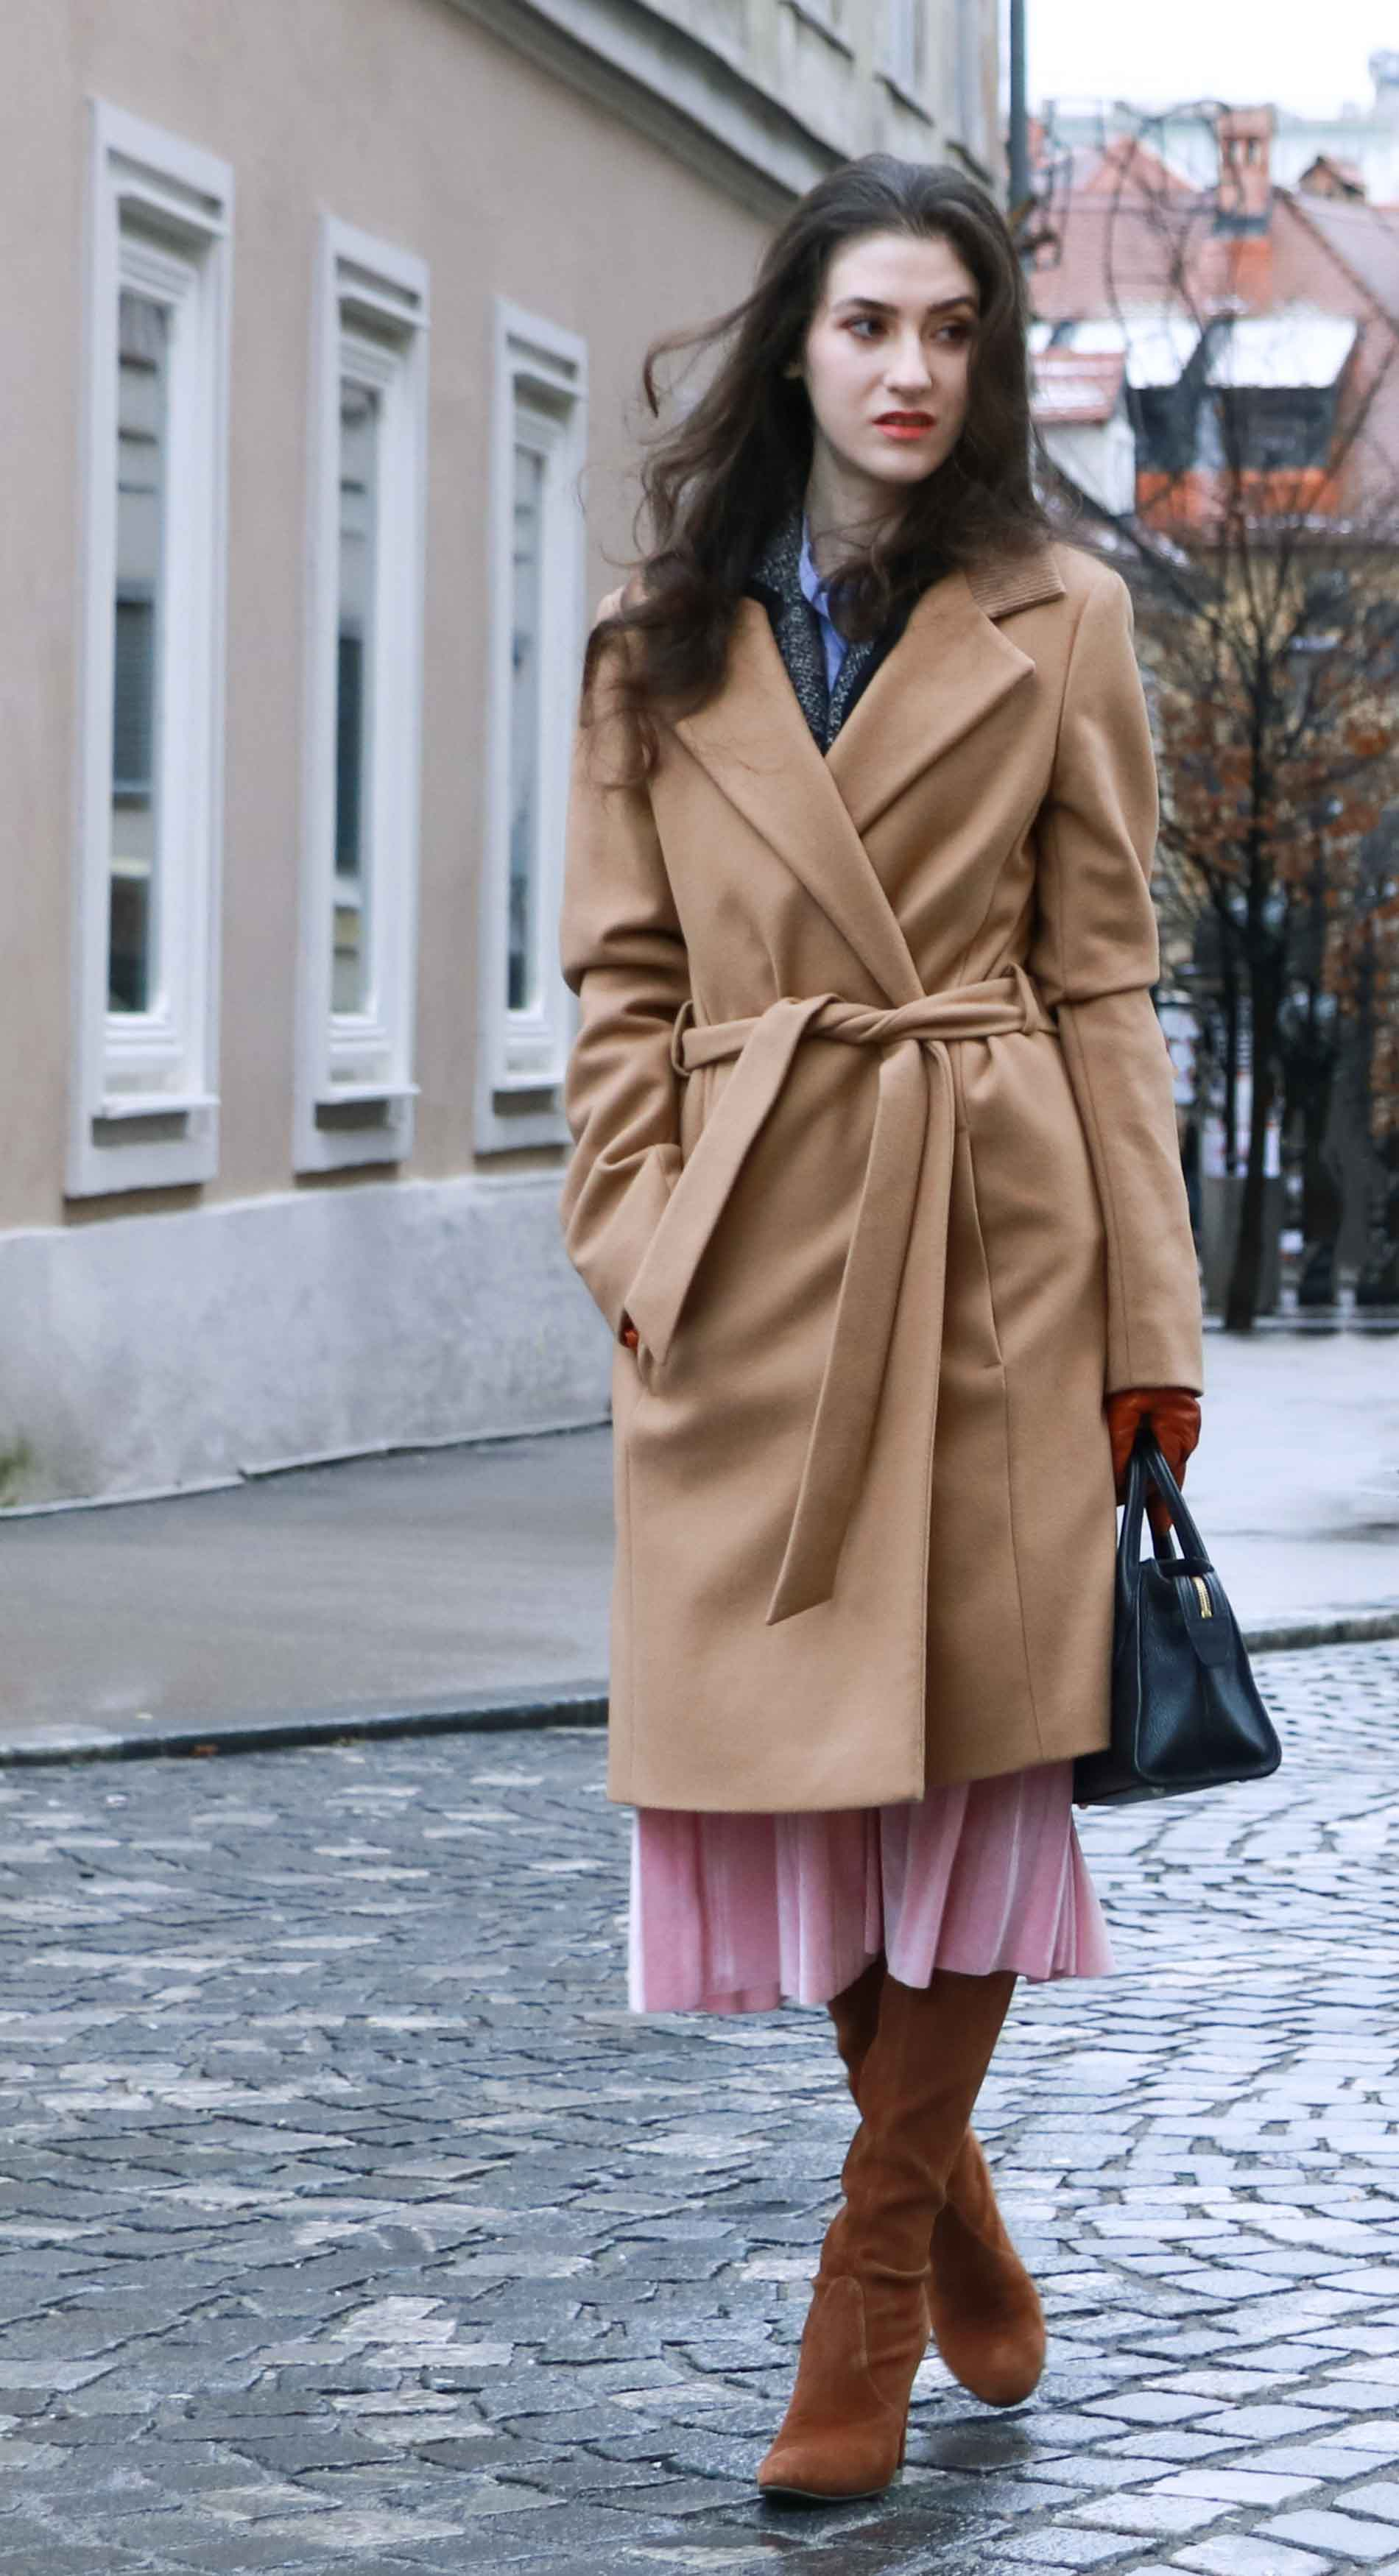 Fashion Blogger Veronika Lipar of Brunette from Wall Street dressed stylish outfit, ESCADA wrap camel coat, pink velvet midi pleated skirt, brown Stuart Weitzman Highland OTK boots, black top handle bag, leather gloves on the streets of Ljubljana